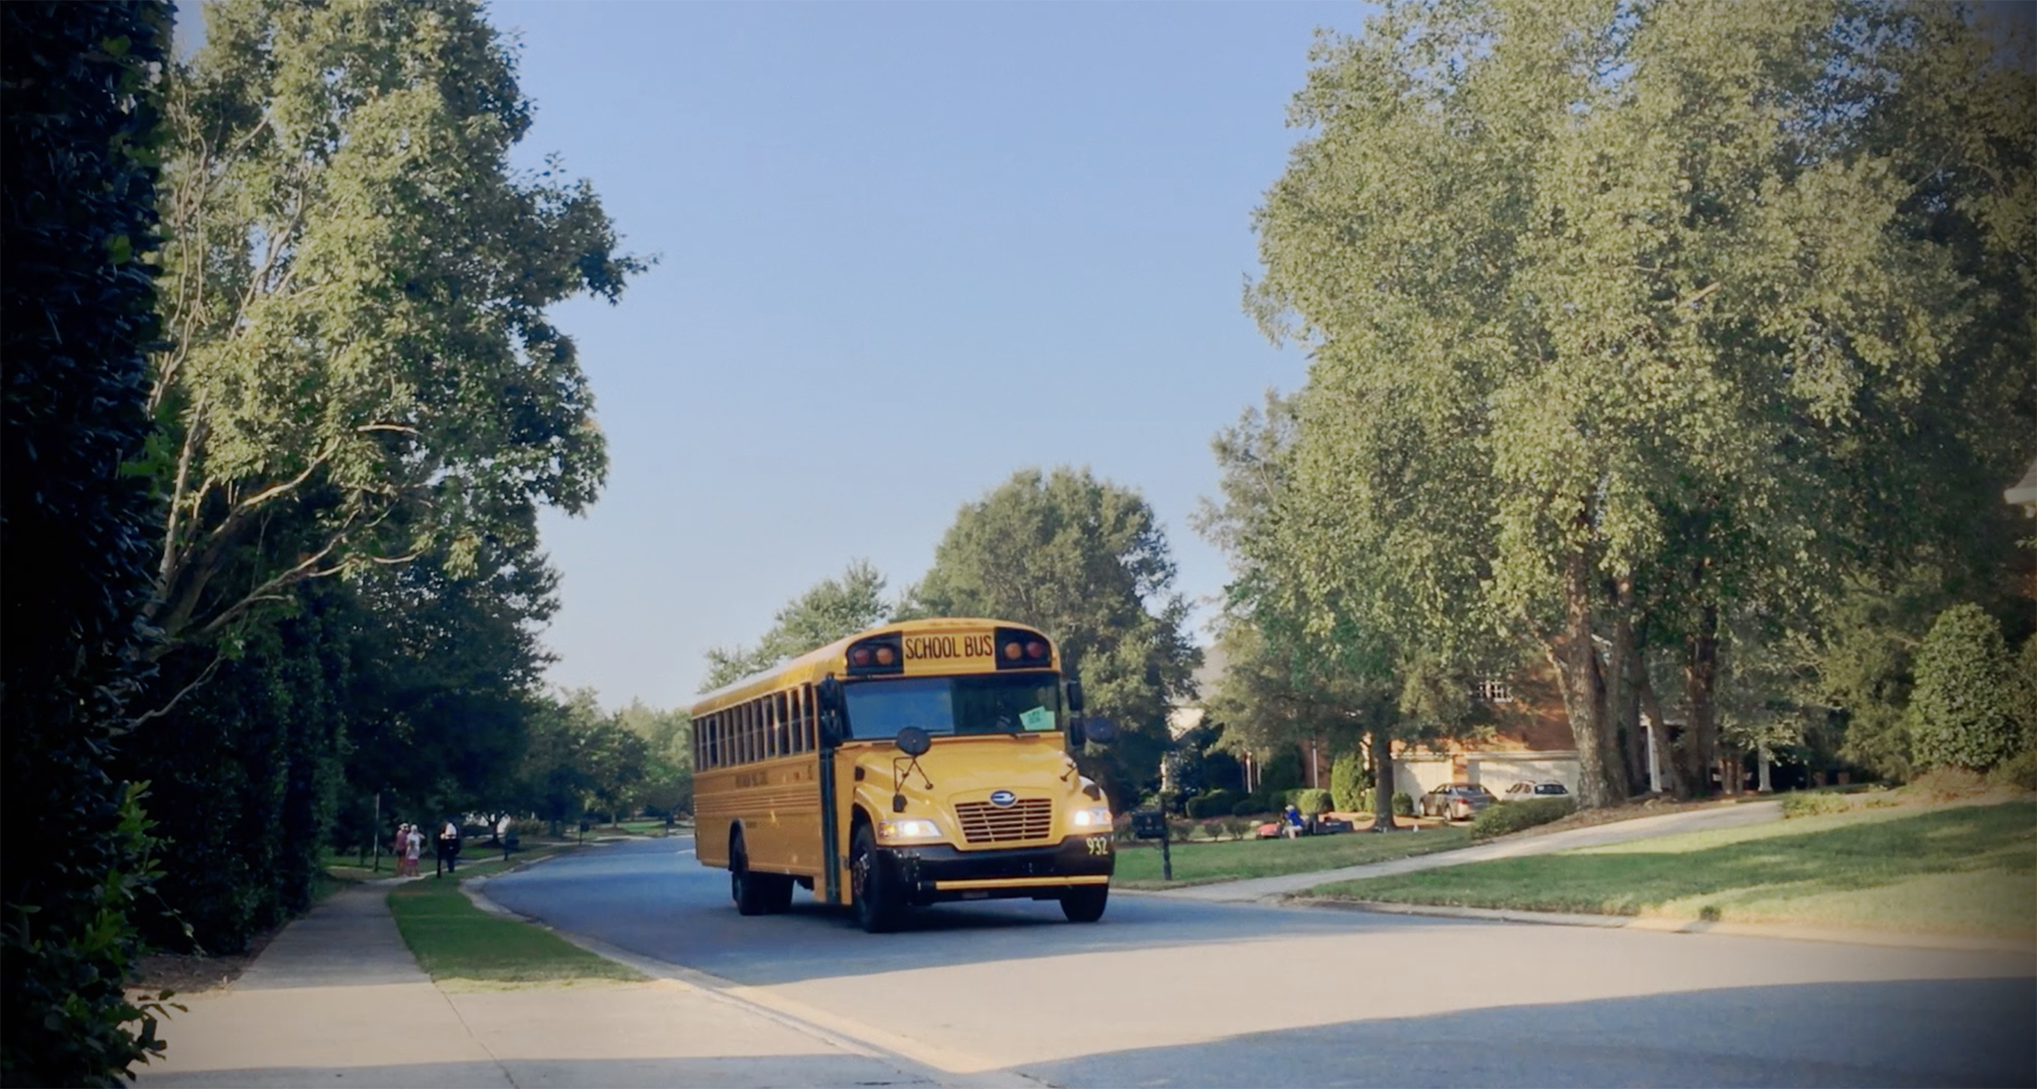 How would you feel if your child's school bus driver was high on the job?